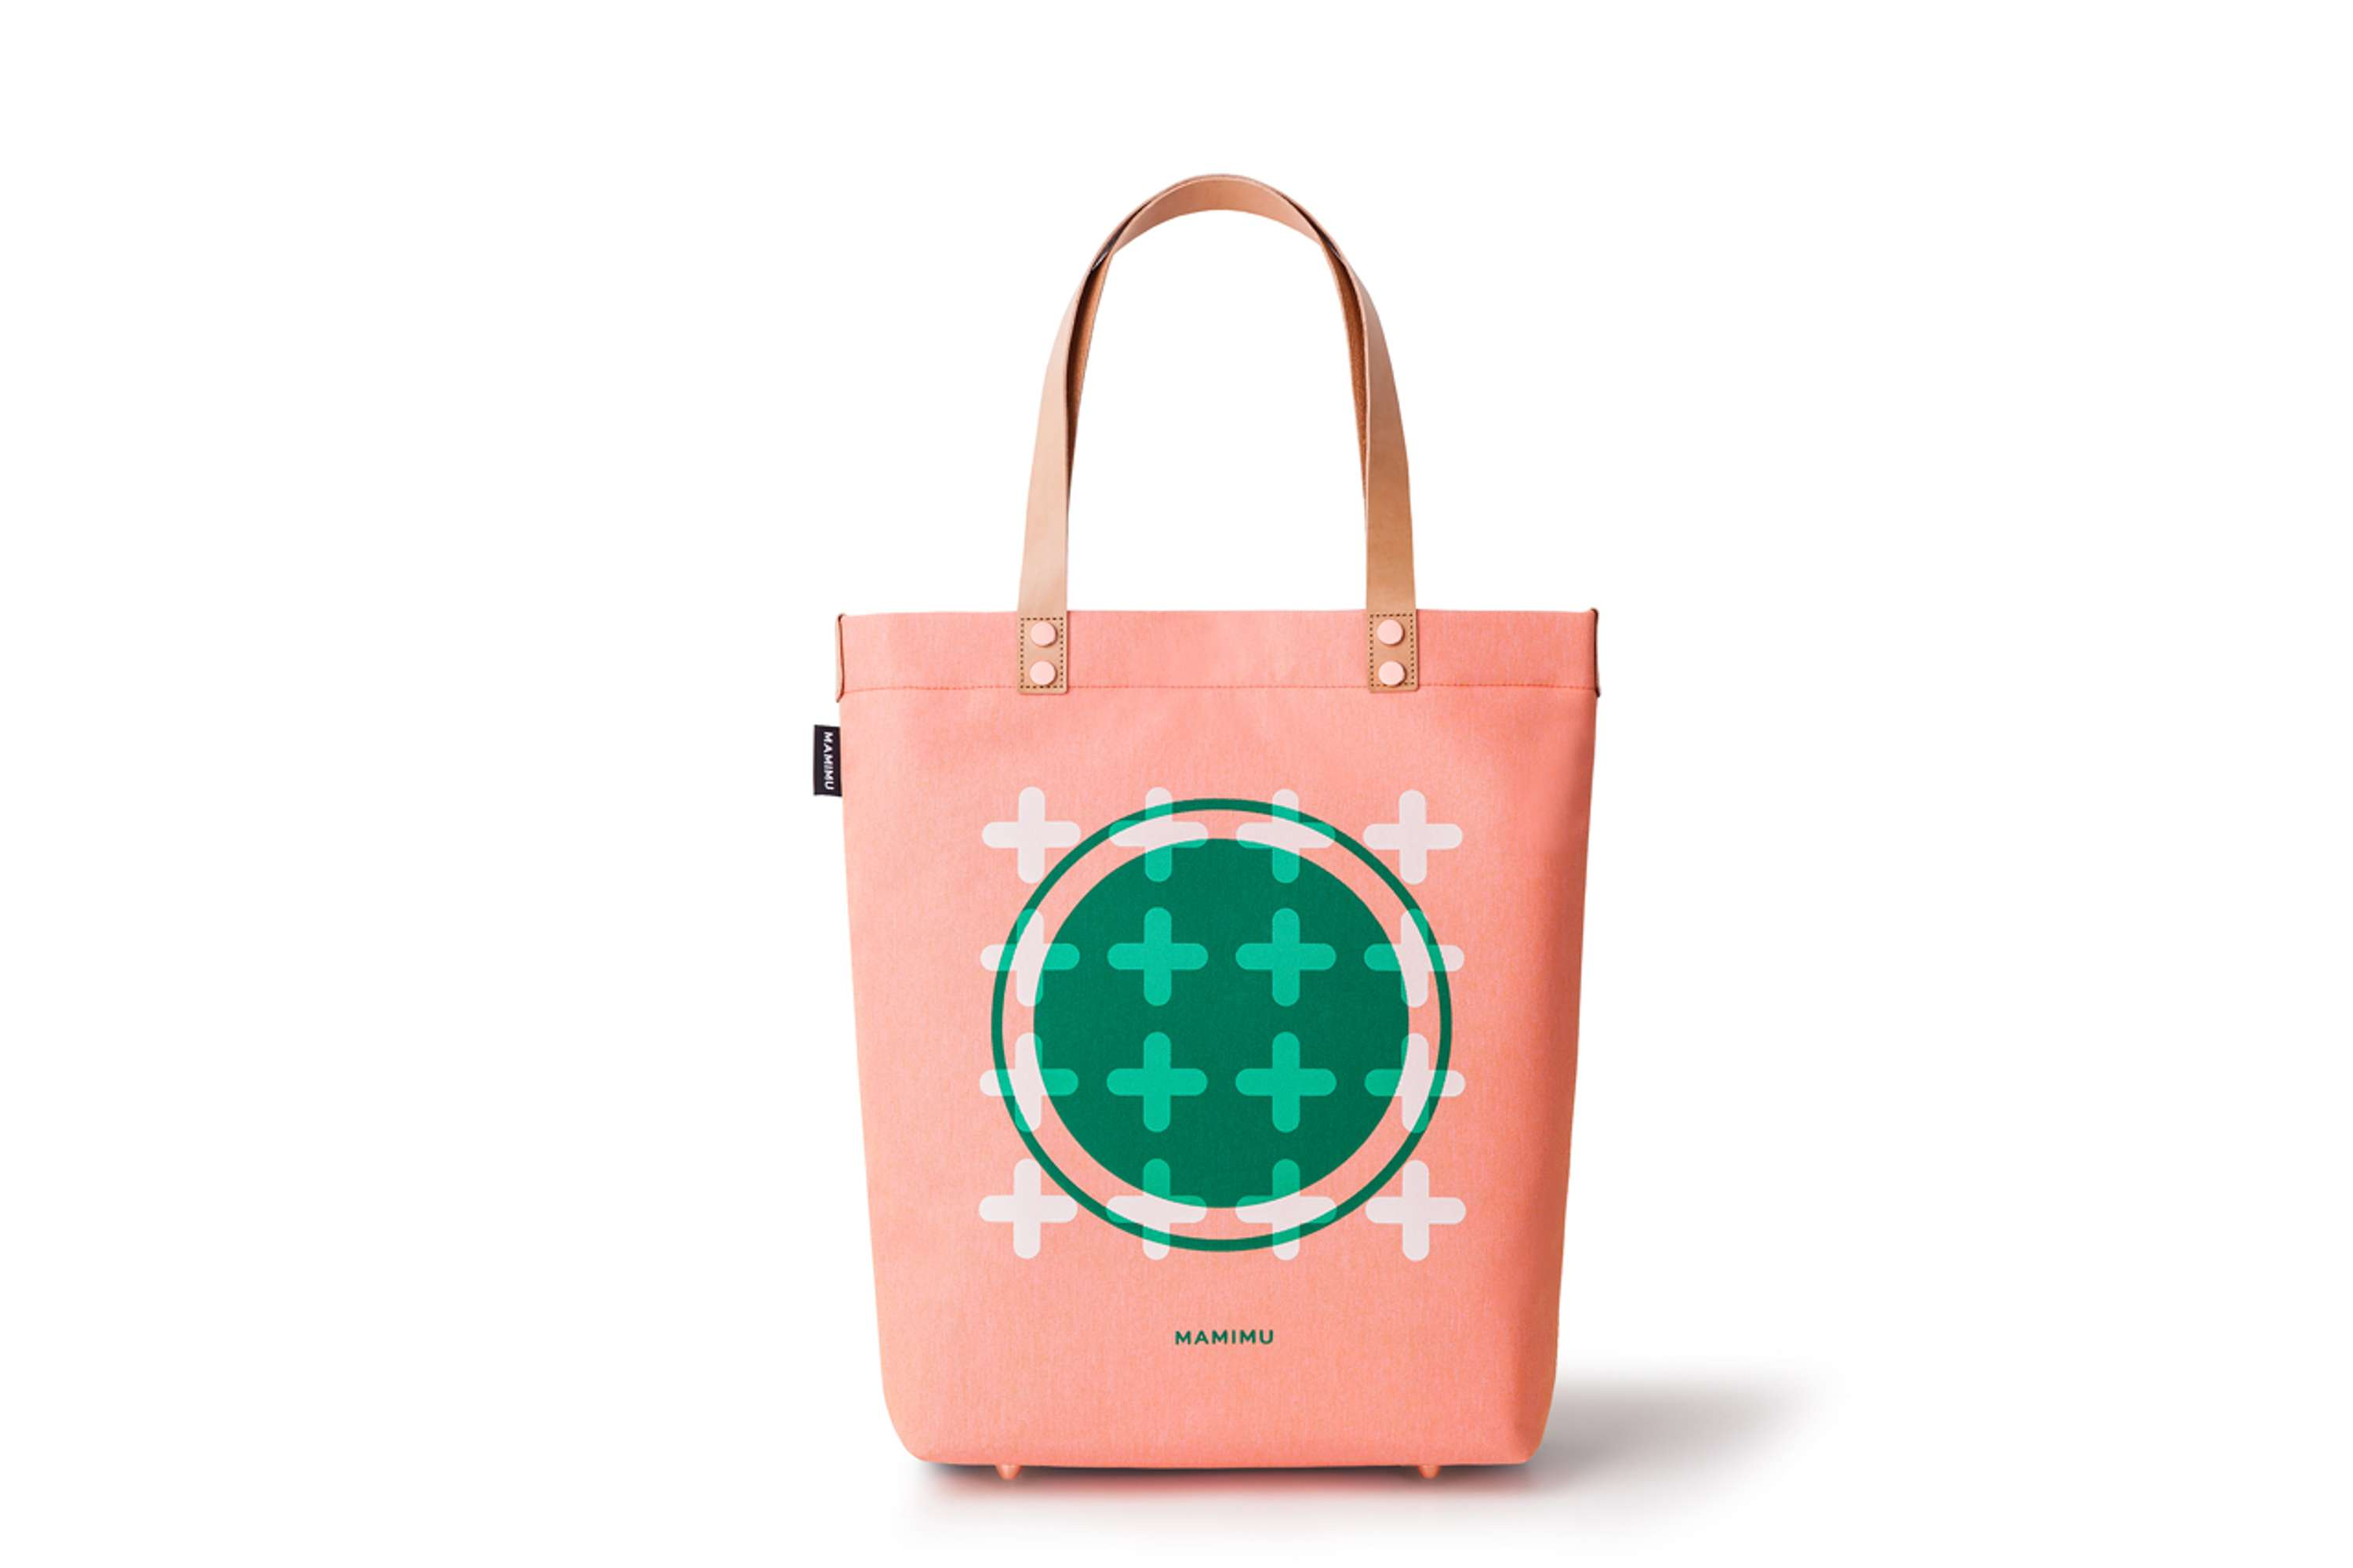 e0fa38848 Stylish and functional tote bags for urban creatives and global  wanderlusters.